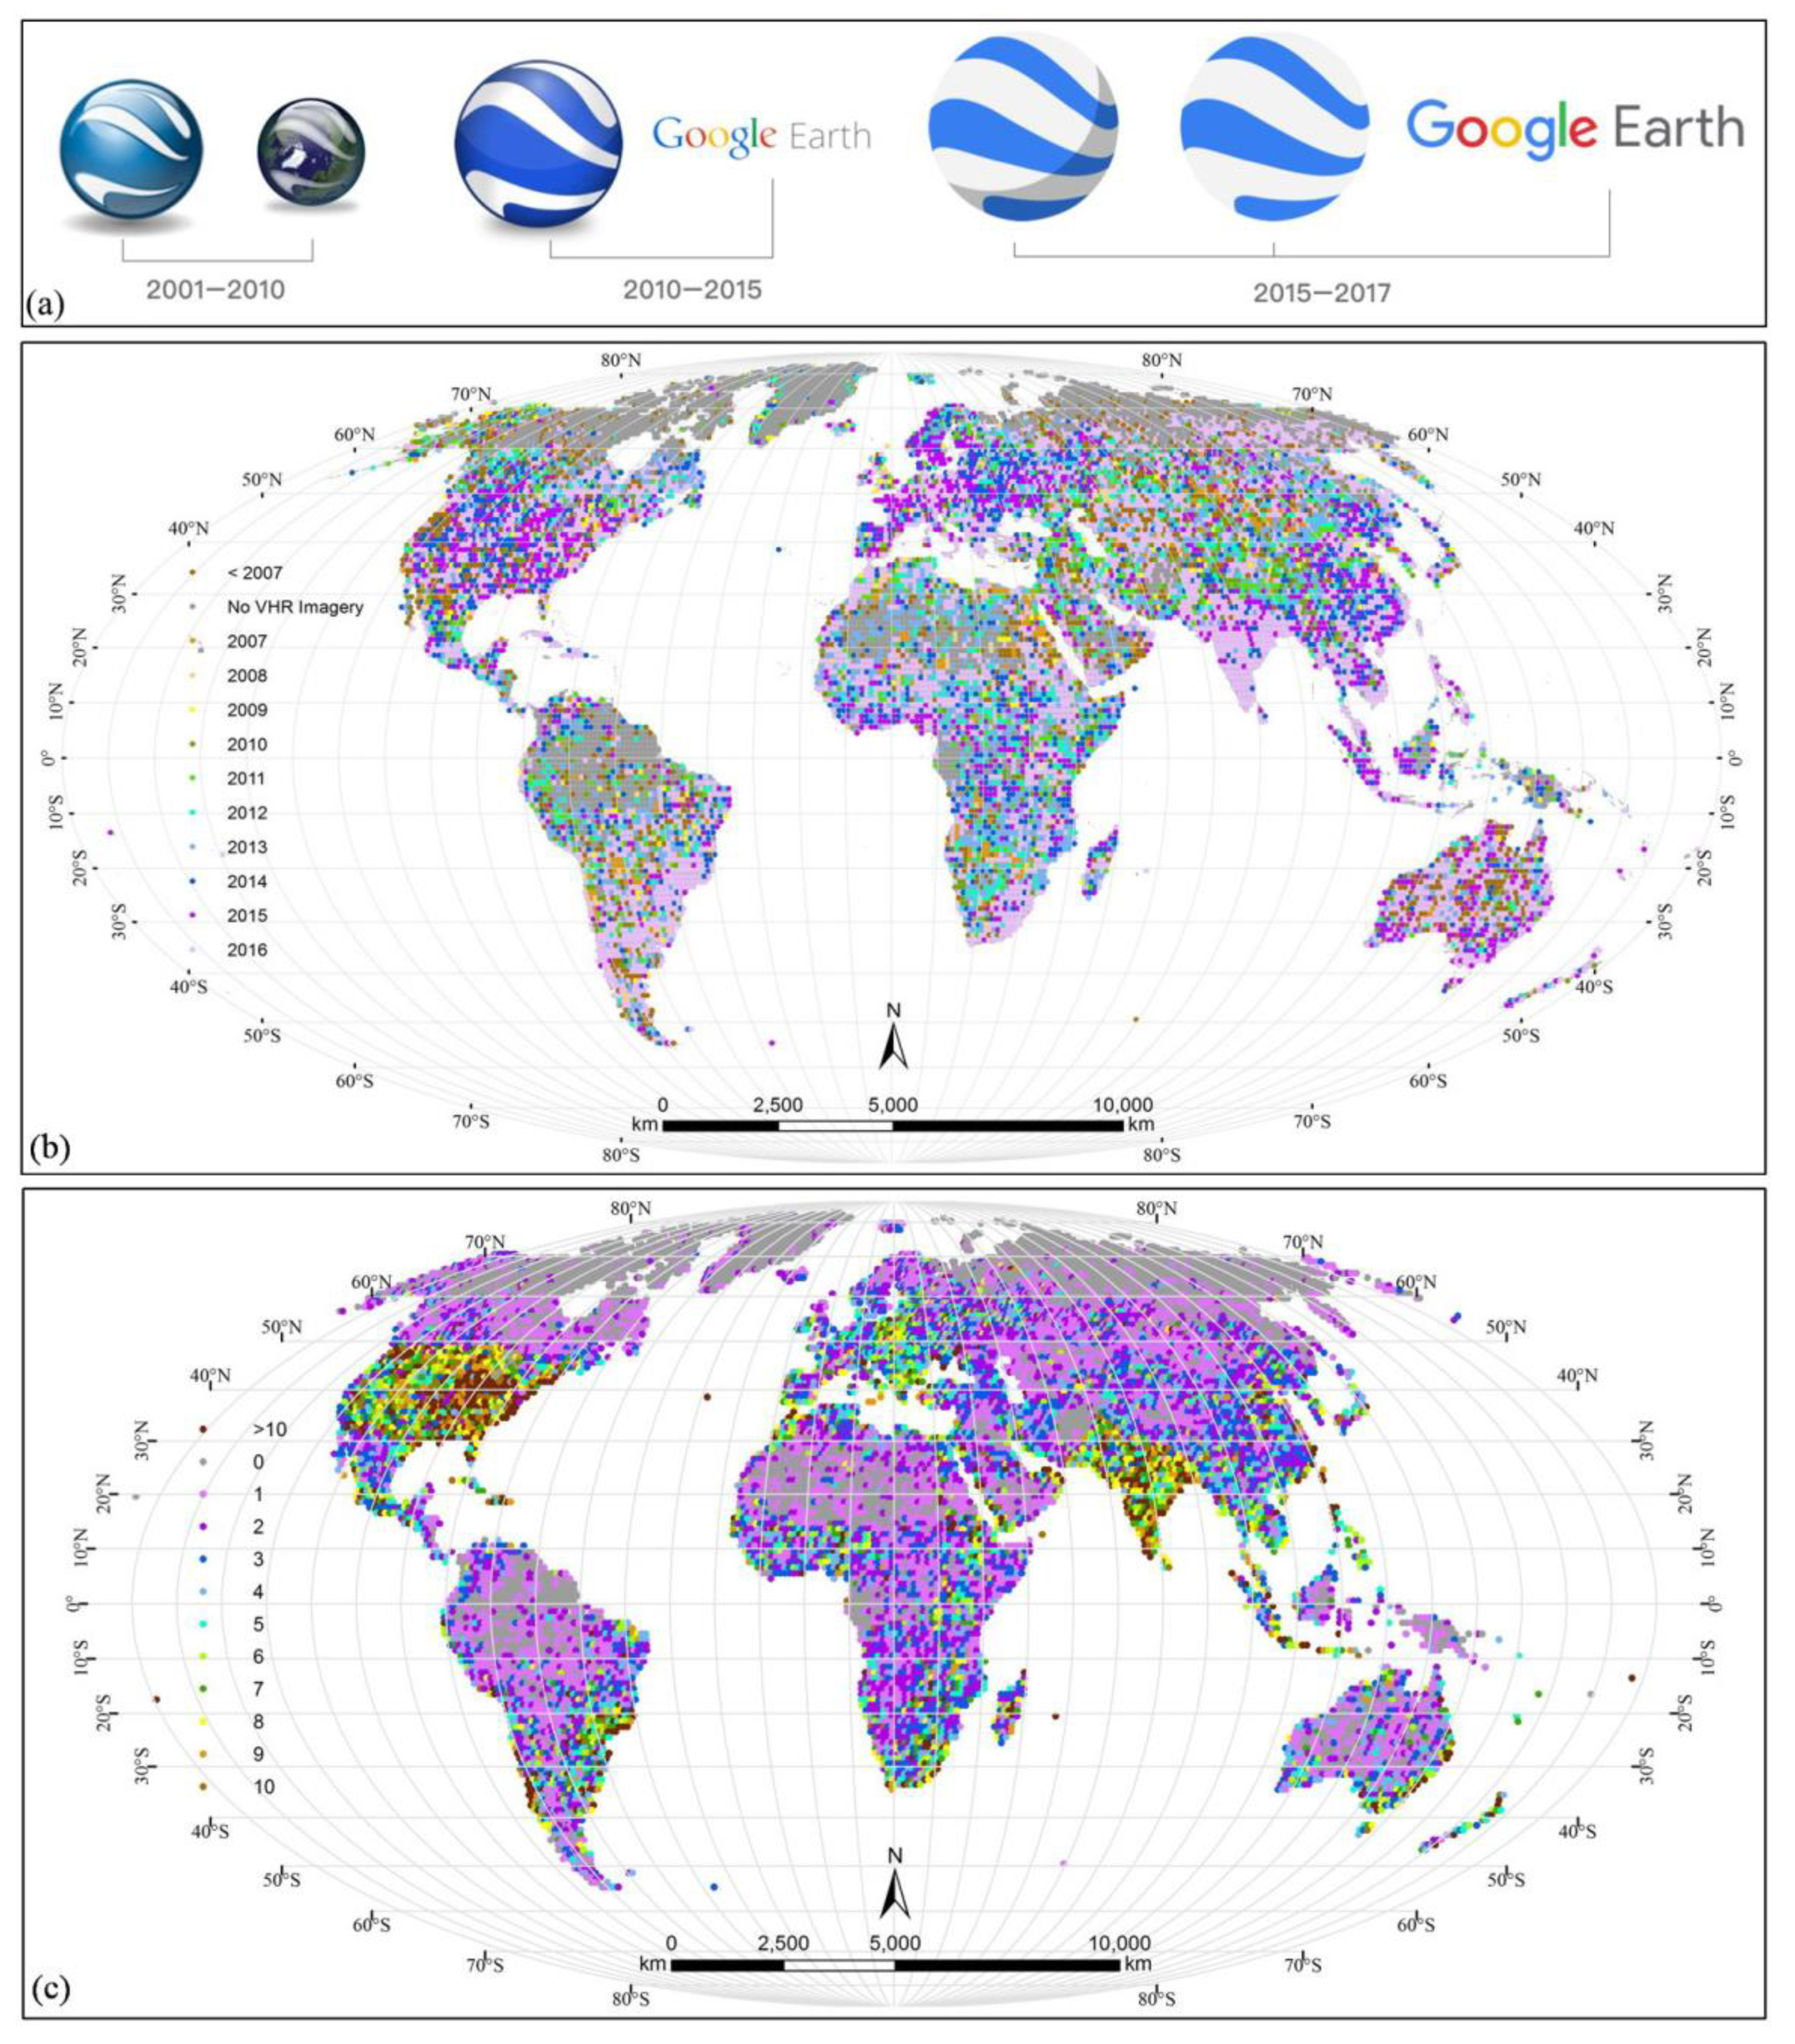 Remote Sensing | Free Full-Text | Google Earth as a Powerful Tool